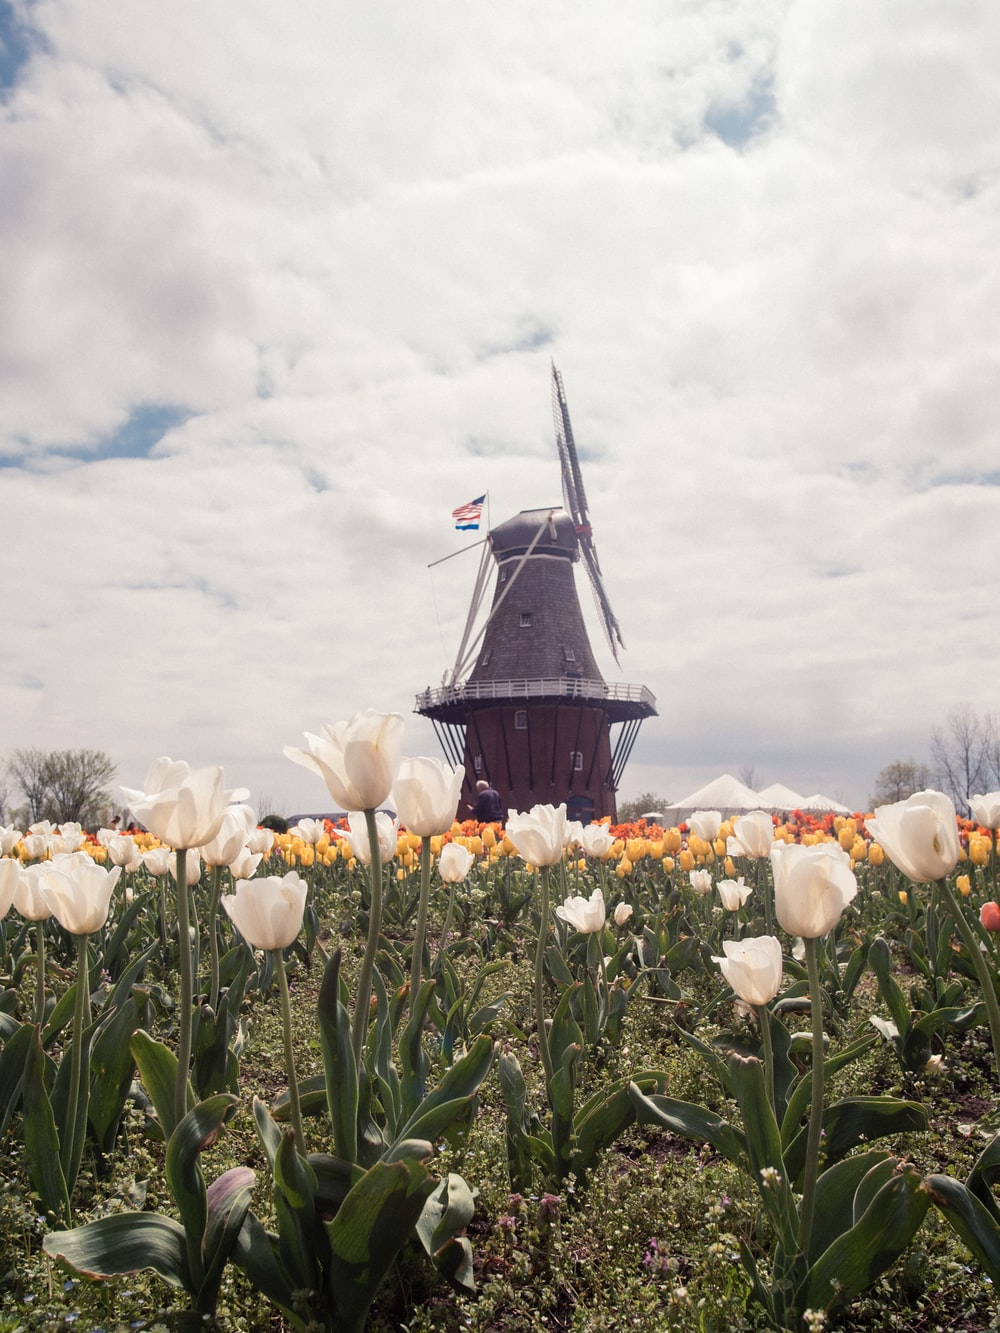 black and brown windmill surrounded by green plants under white clouds during daytime